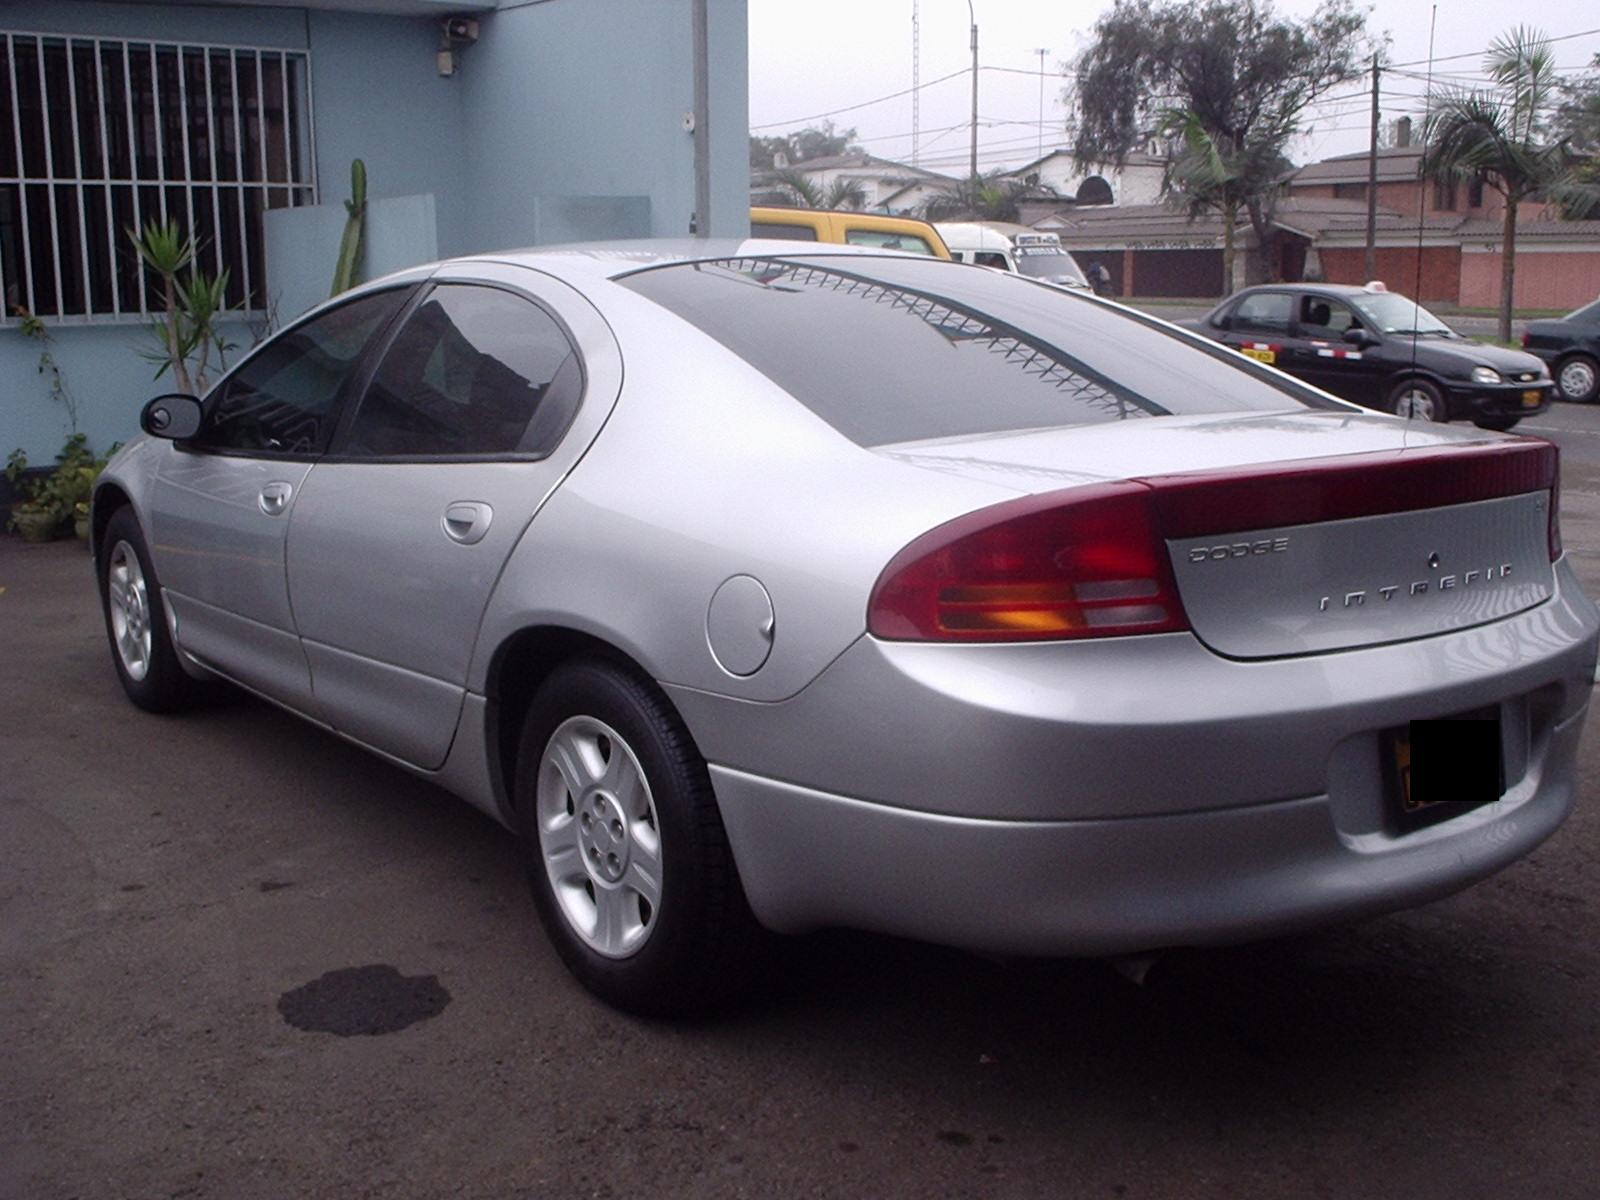 2004 Dodge Intrepid #2